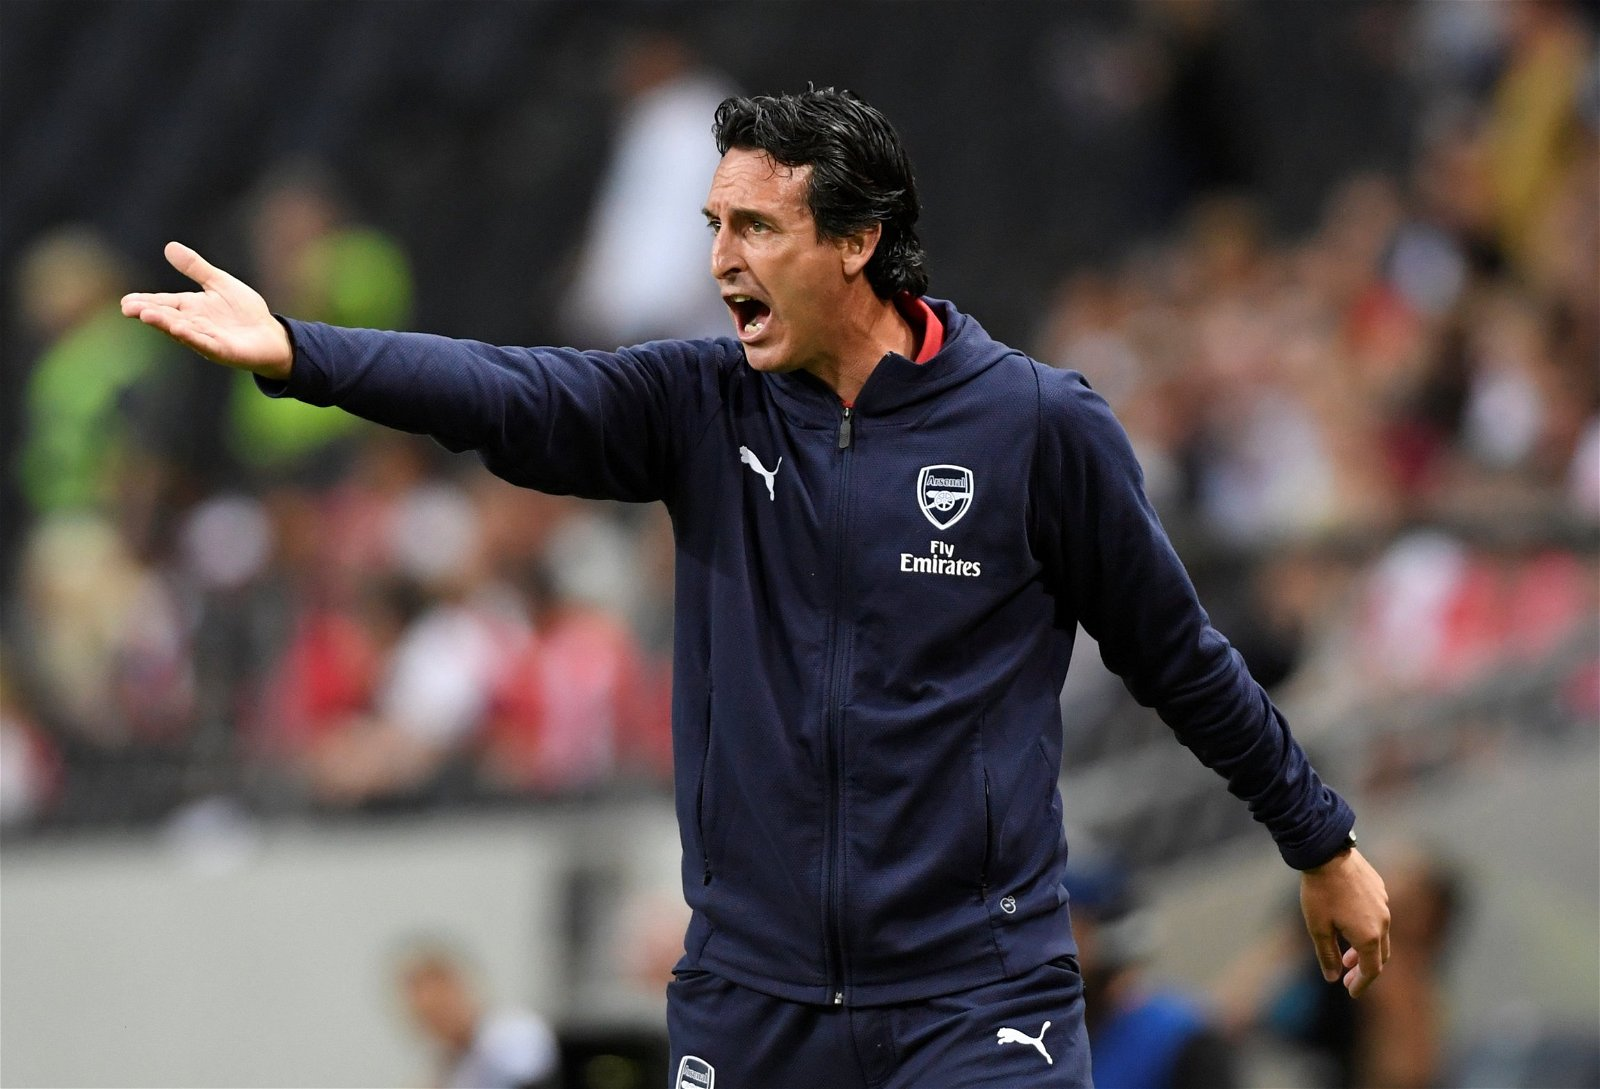 Unai Emery barks orders from the touchline